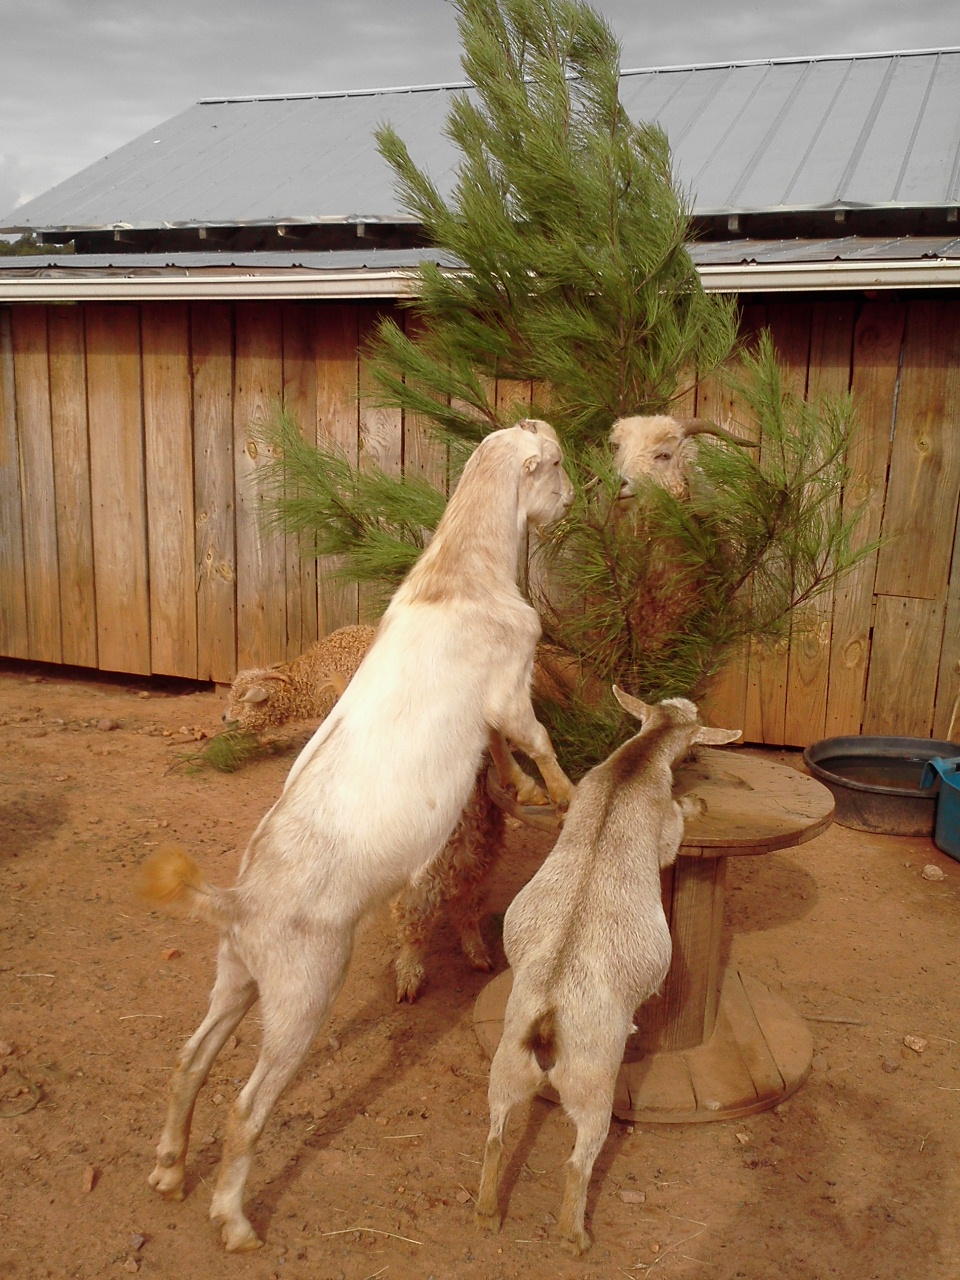 How the Goats Ate Their Christmas Tree